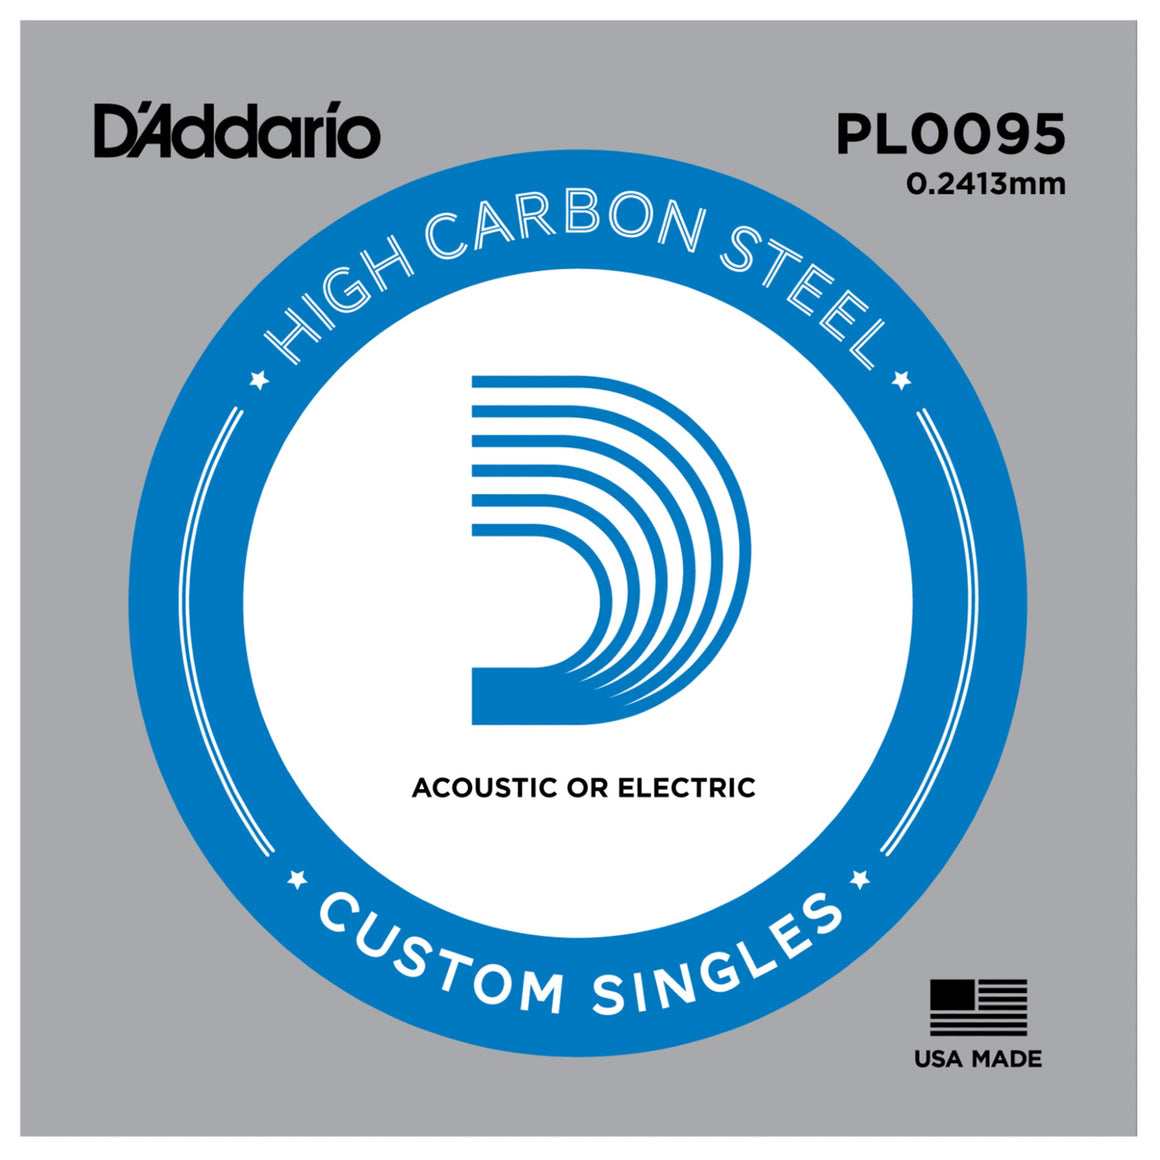 D'Addario PL0095 Plain Steel Single Acoustic Guitar String .0095